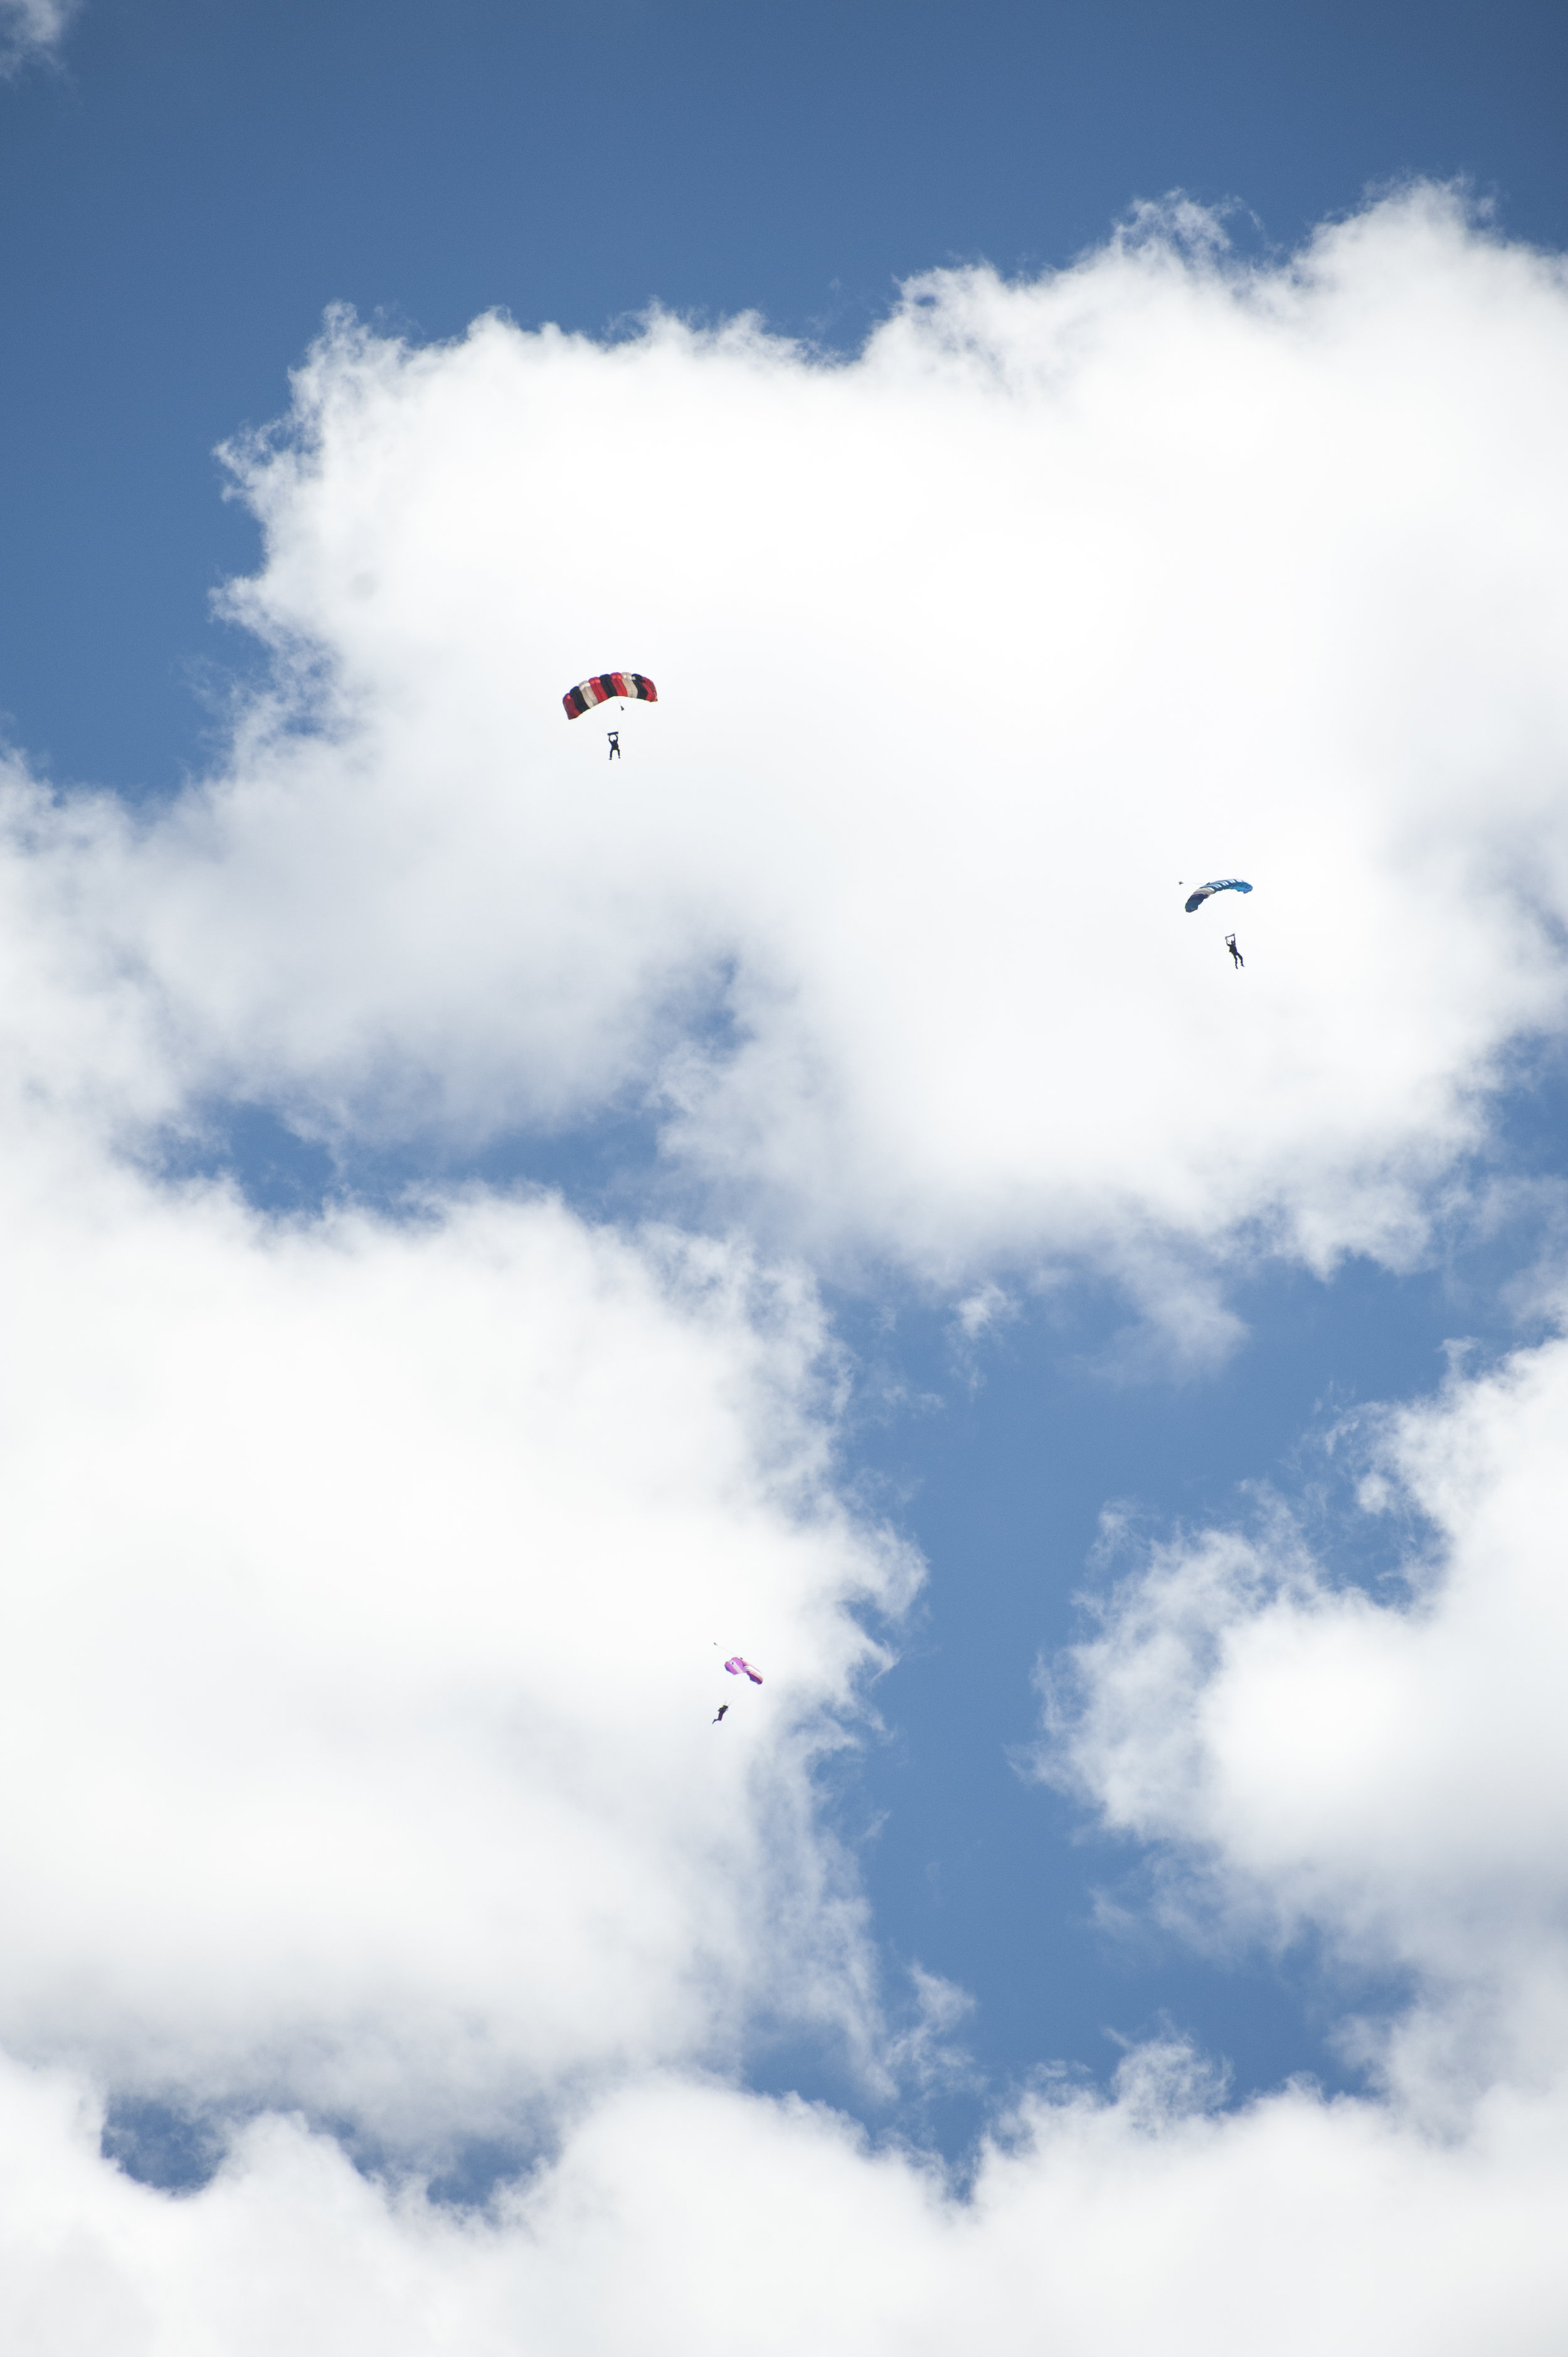 About 6,500 people watched the parachute demonstrations at the Big Bear City Airport air fair Aug. 26, 2017.